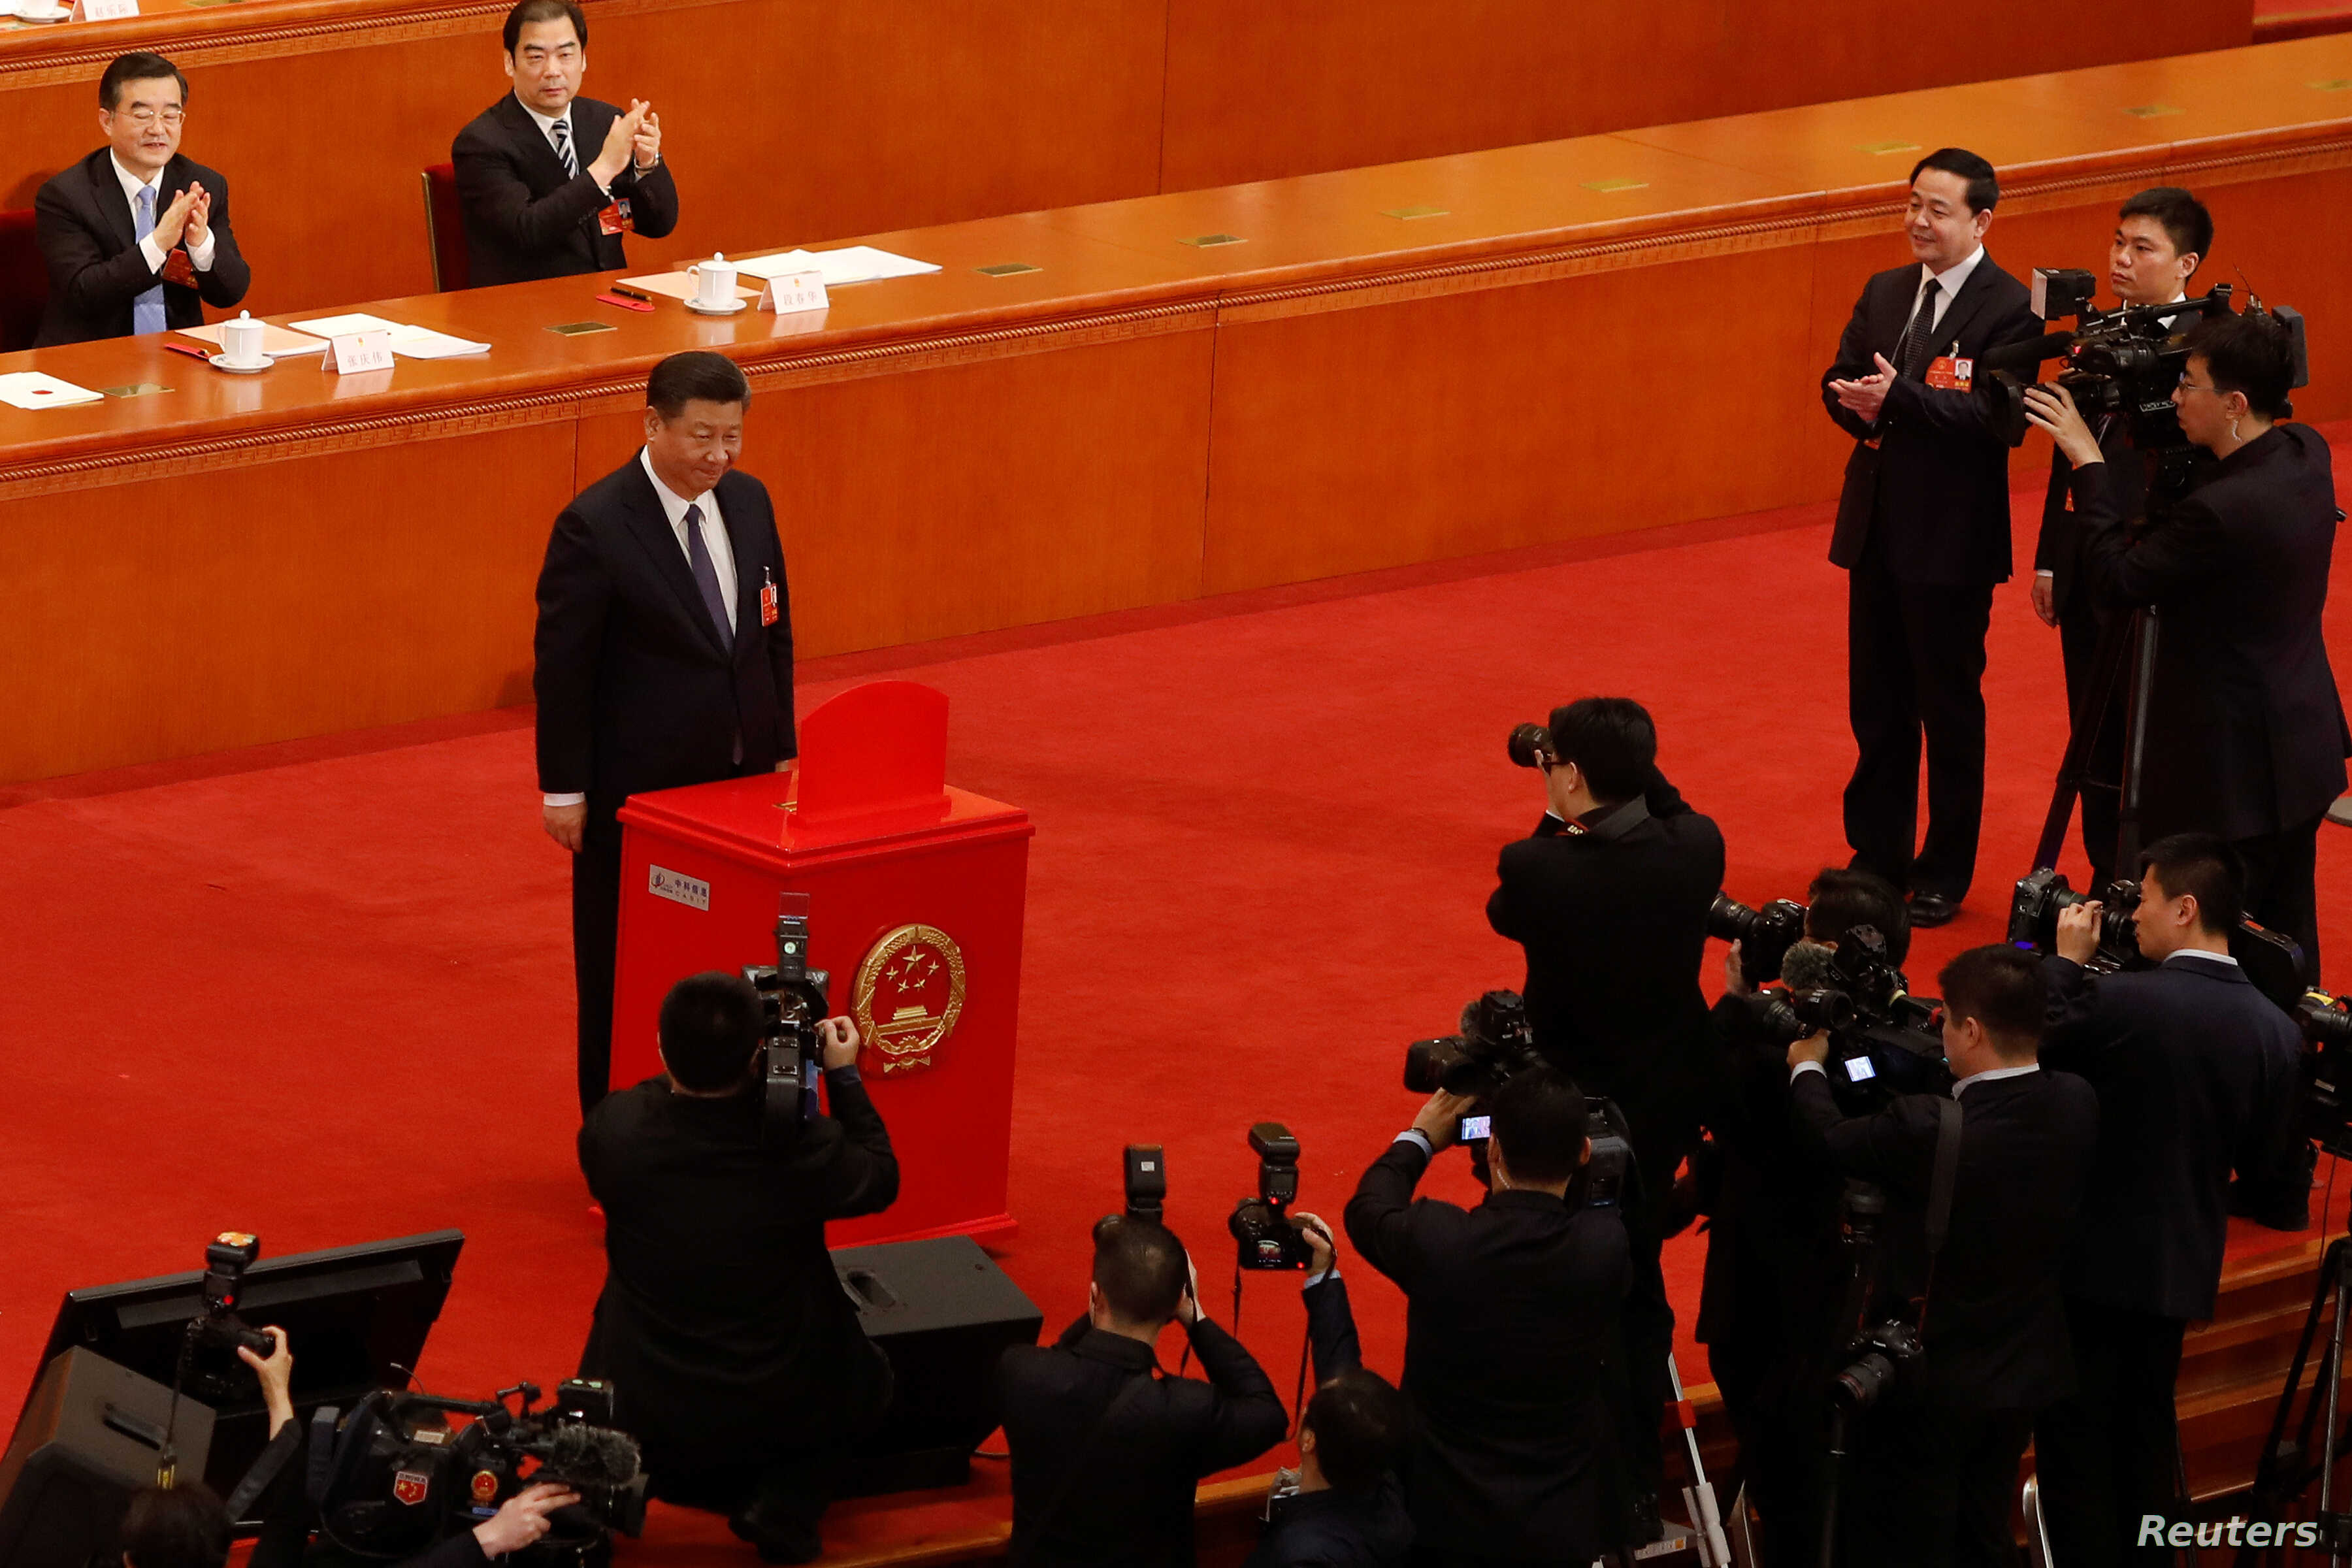 Chinese President Xi Jinping pauses after casting his ballot during a vote on a constitutional amendment lifting presidential term limits, at the third plenary session of the National People's Congress (NPC) at the Great Hall of the People in Beijing...